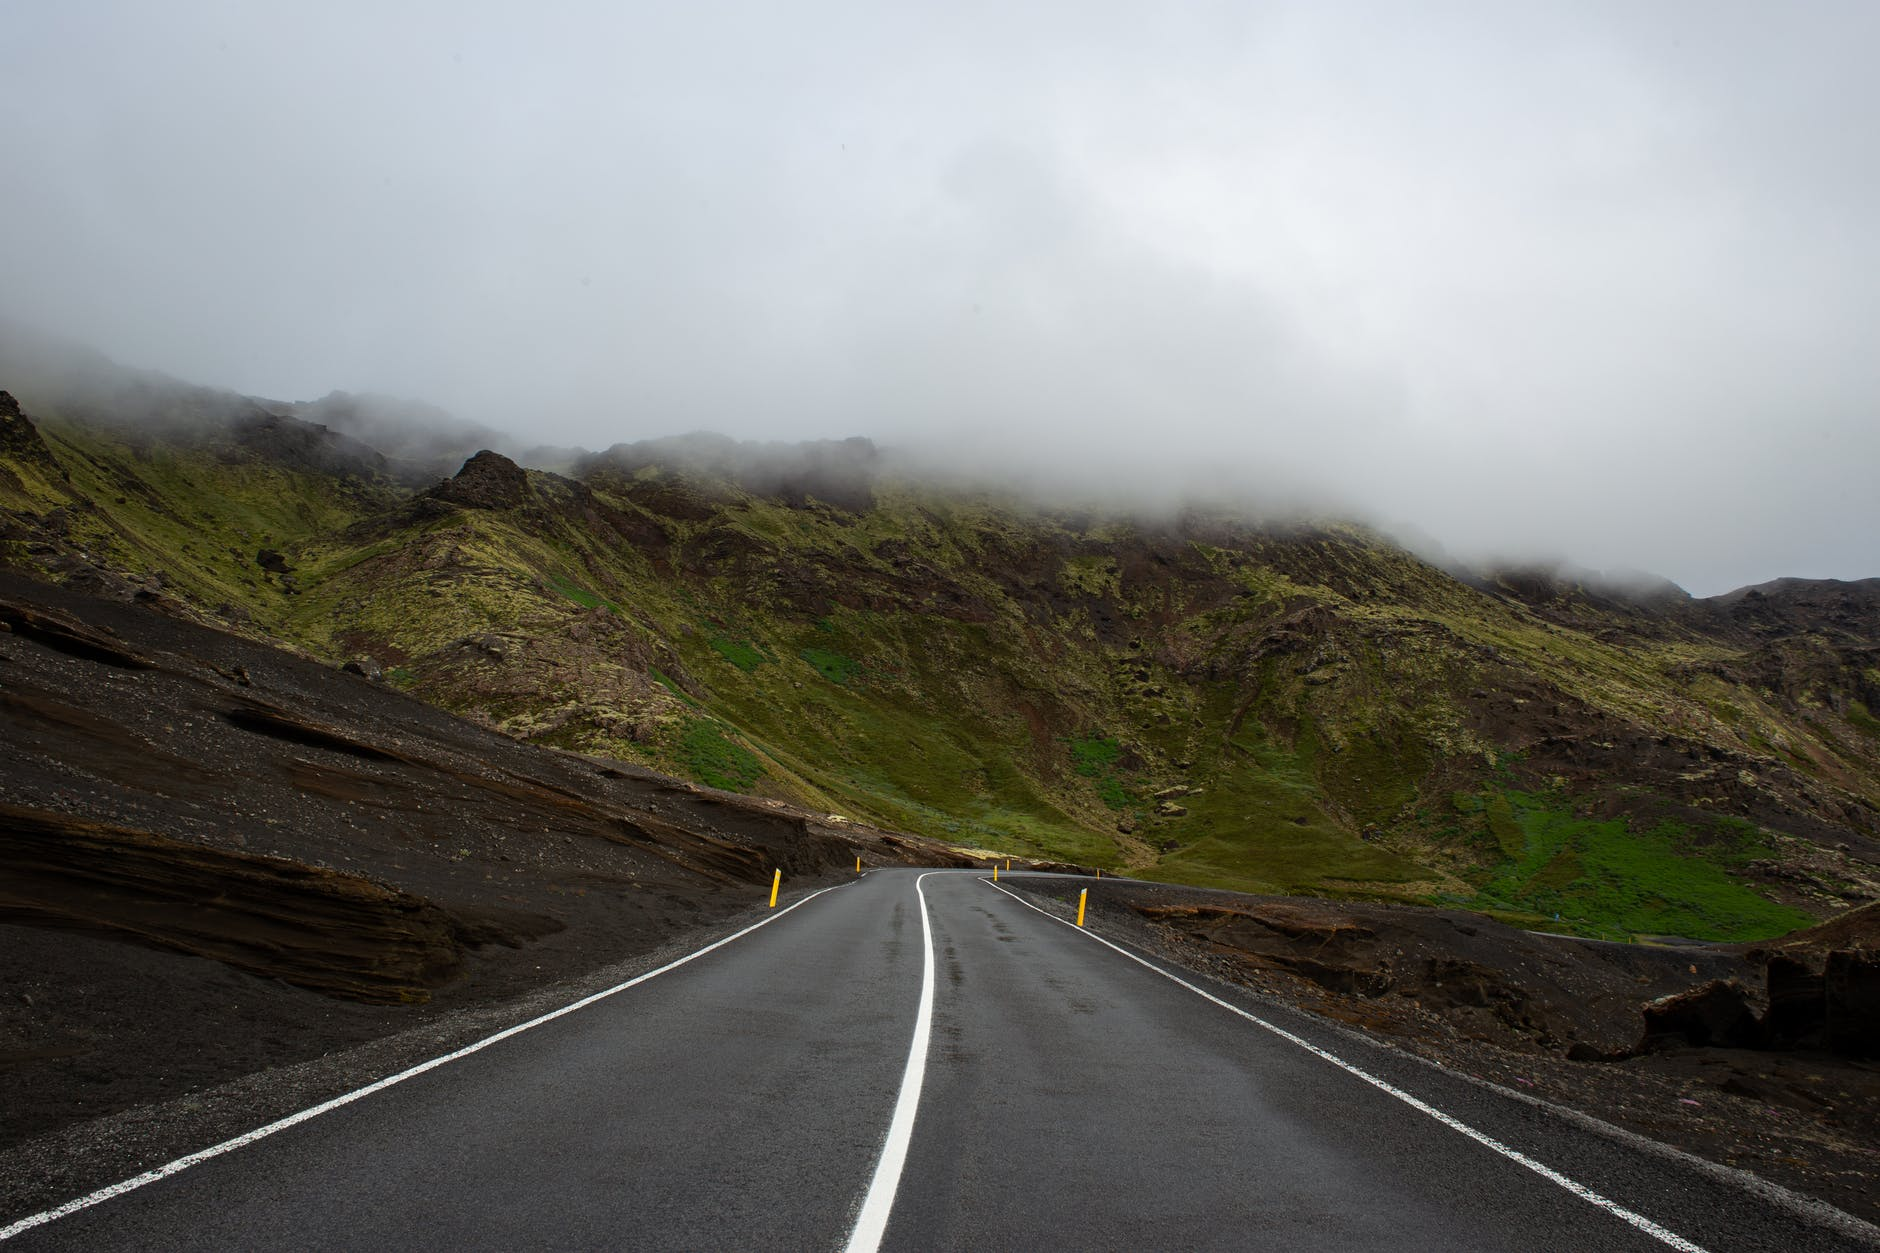 empty road along the mountain